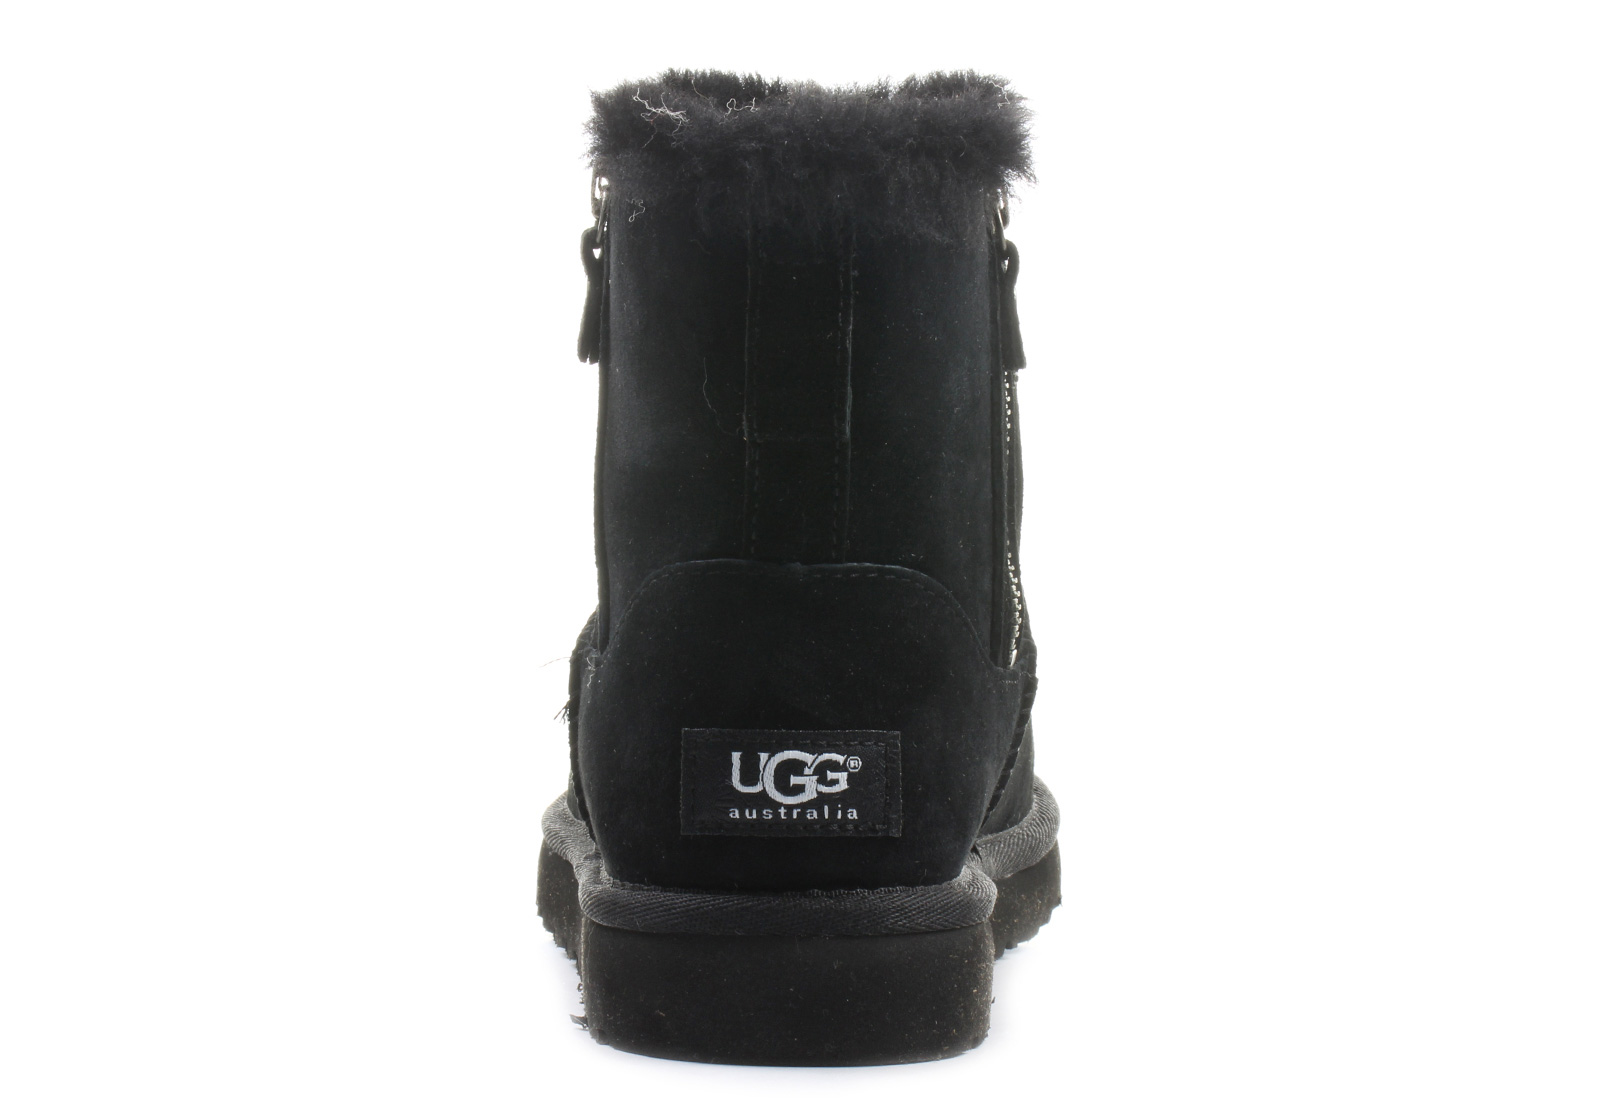 1254ec2509d Ugg Boots - W Classic Mini Double Zip - 1009861-BLK - Online shop for  sneakers, shoes and boots